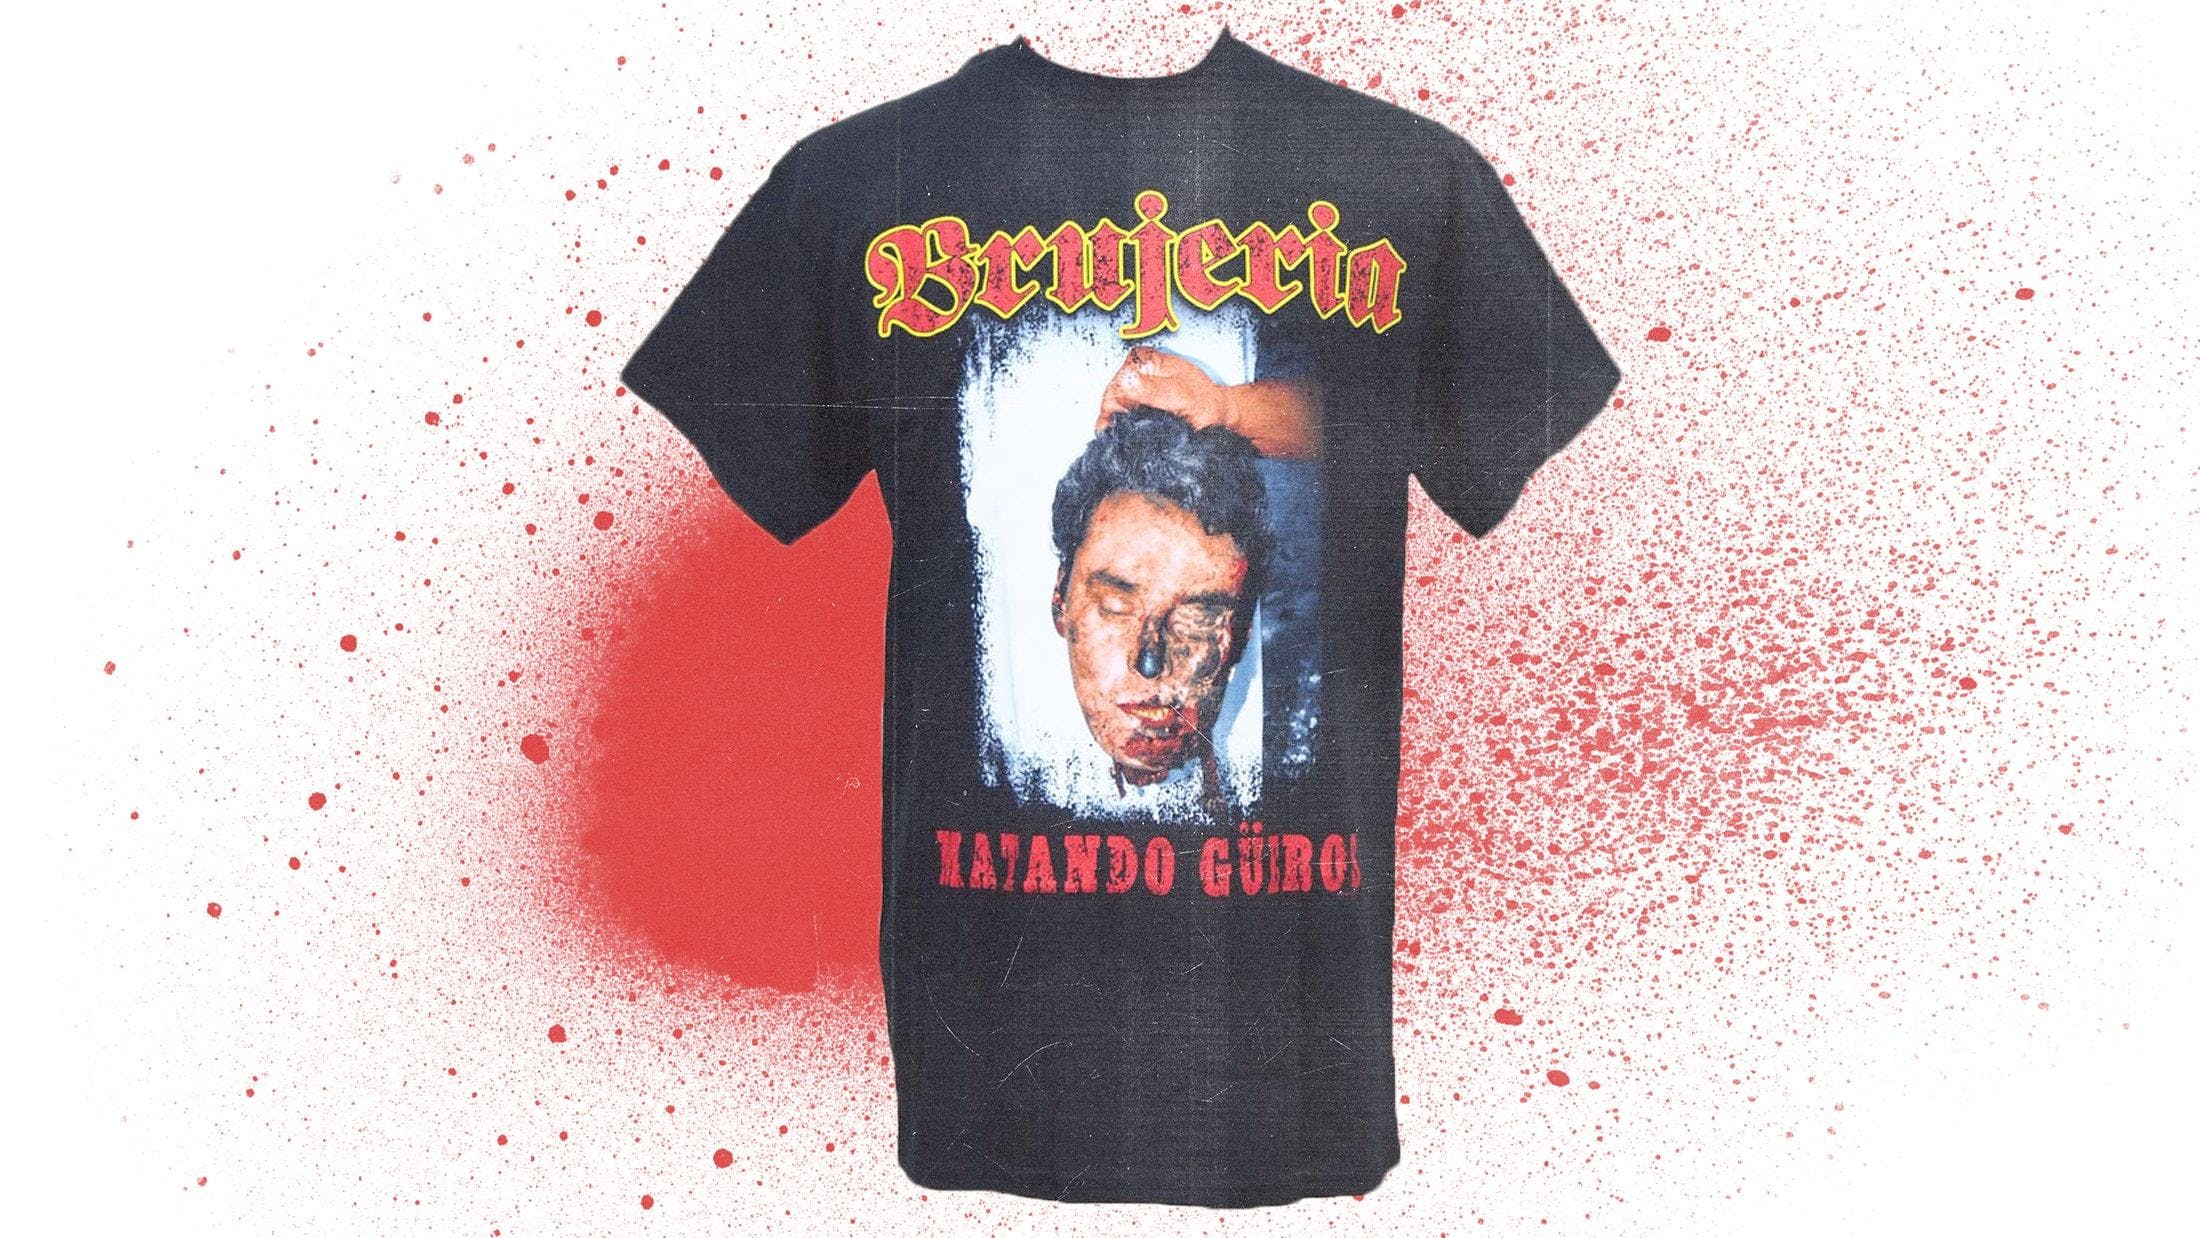 01f92f90 This shirt featuring the album artwork from Mexican-American metal band  Brujeria's 1993 debut record Mantando Güeros is one to avoid wearing if  you're ...